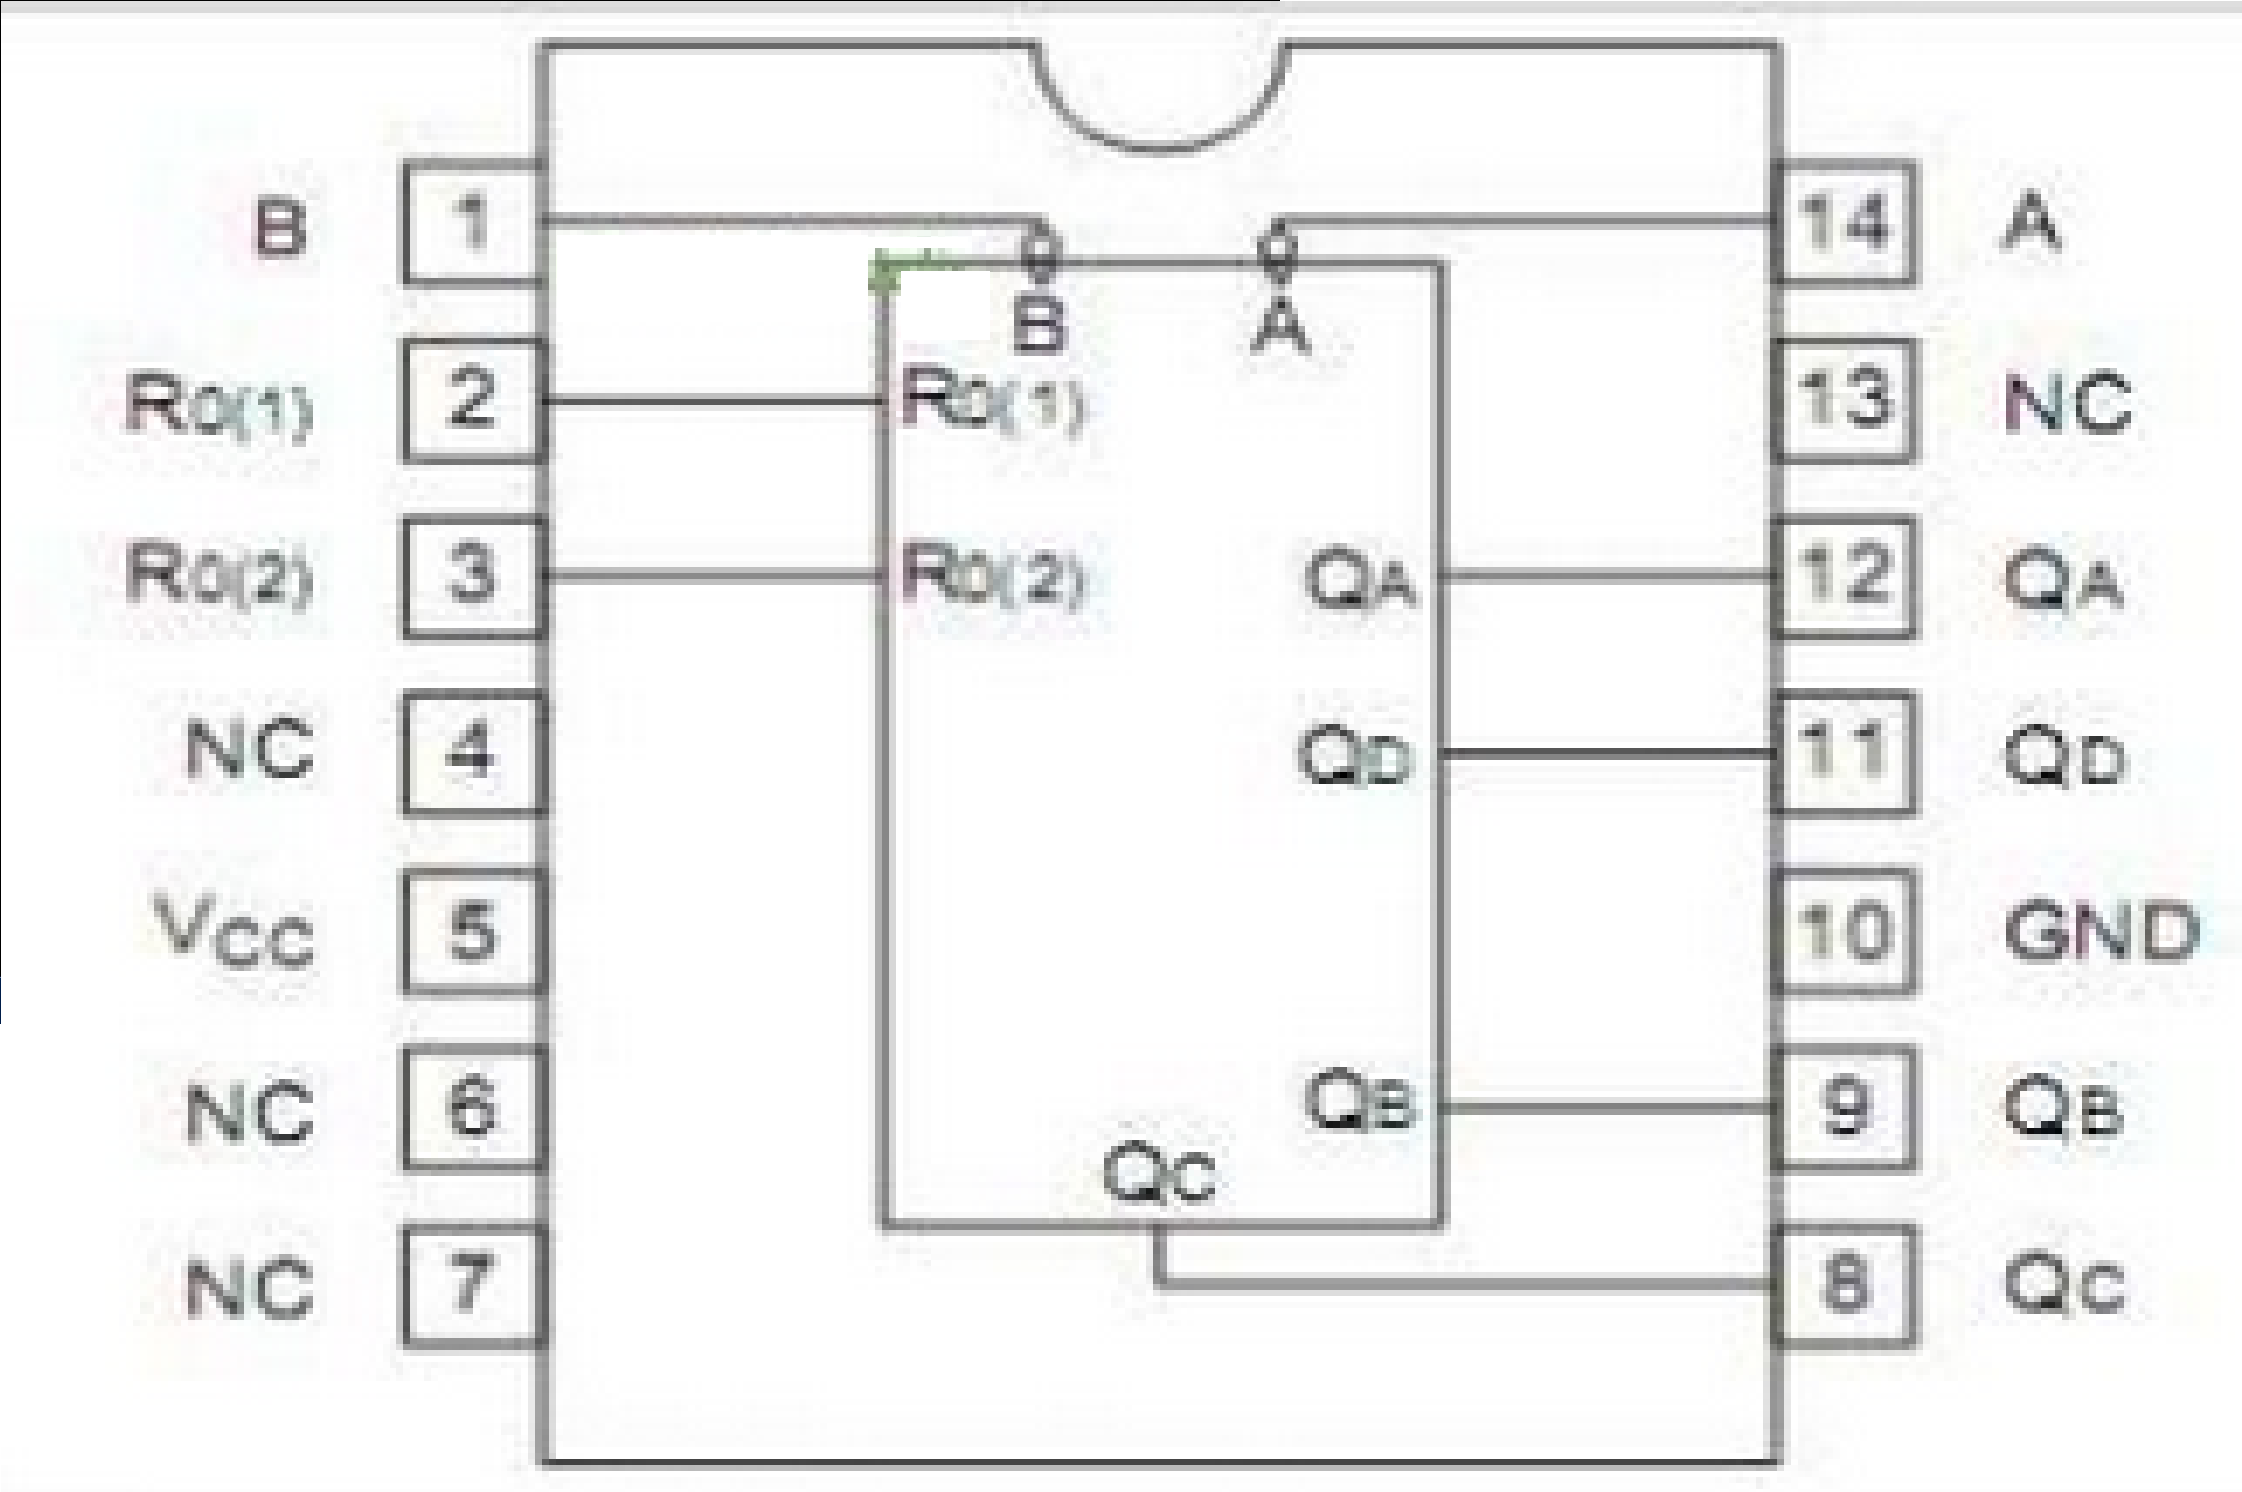 74ls93n Pin Diagram Diy Enthusiasts Wiring Diagrams 7 Segment Decade Counter Tutorial Featuring The 74ls93 A Key To Rh Instructables Com Usb Cat 5